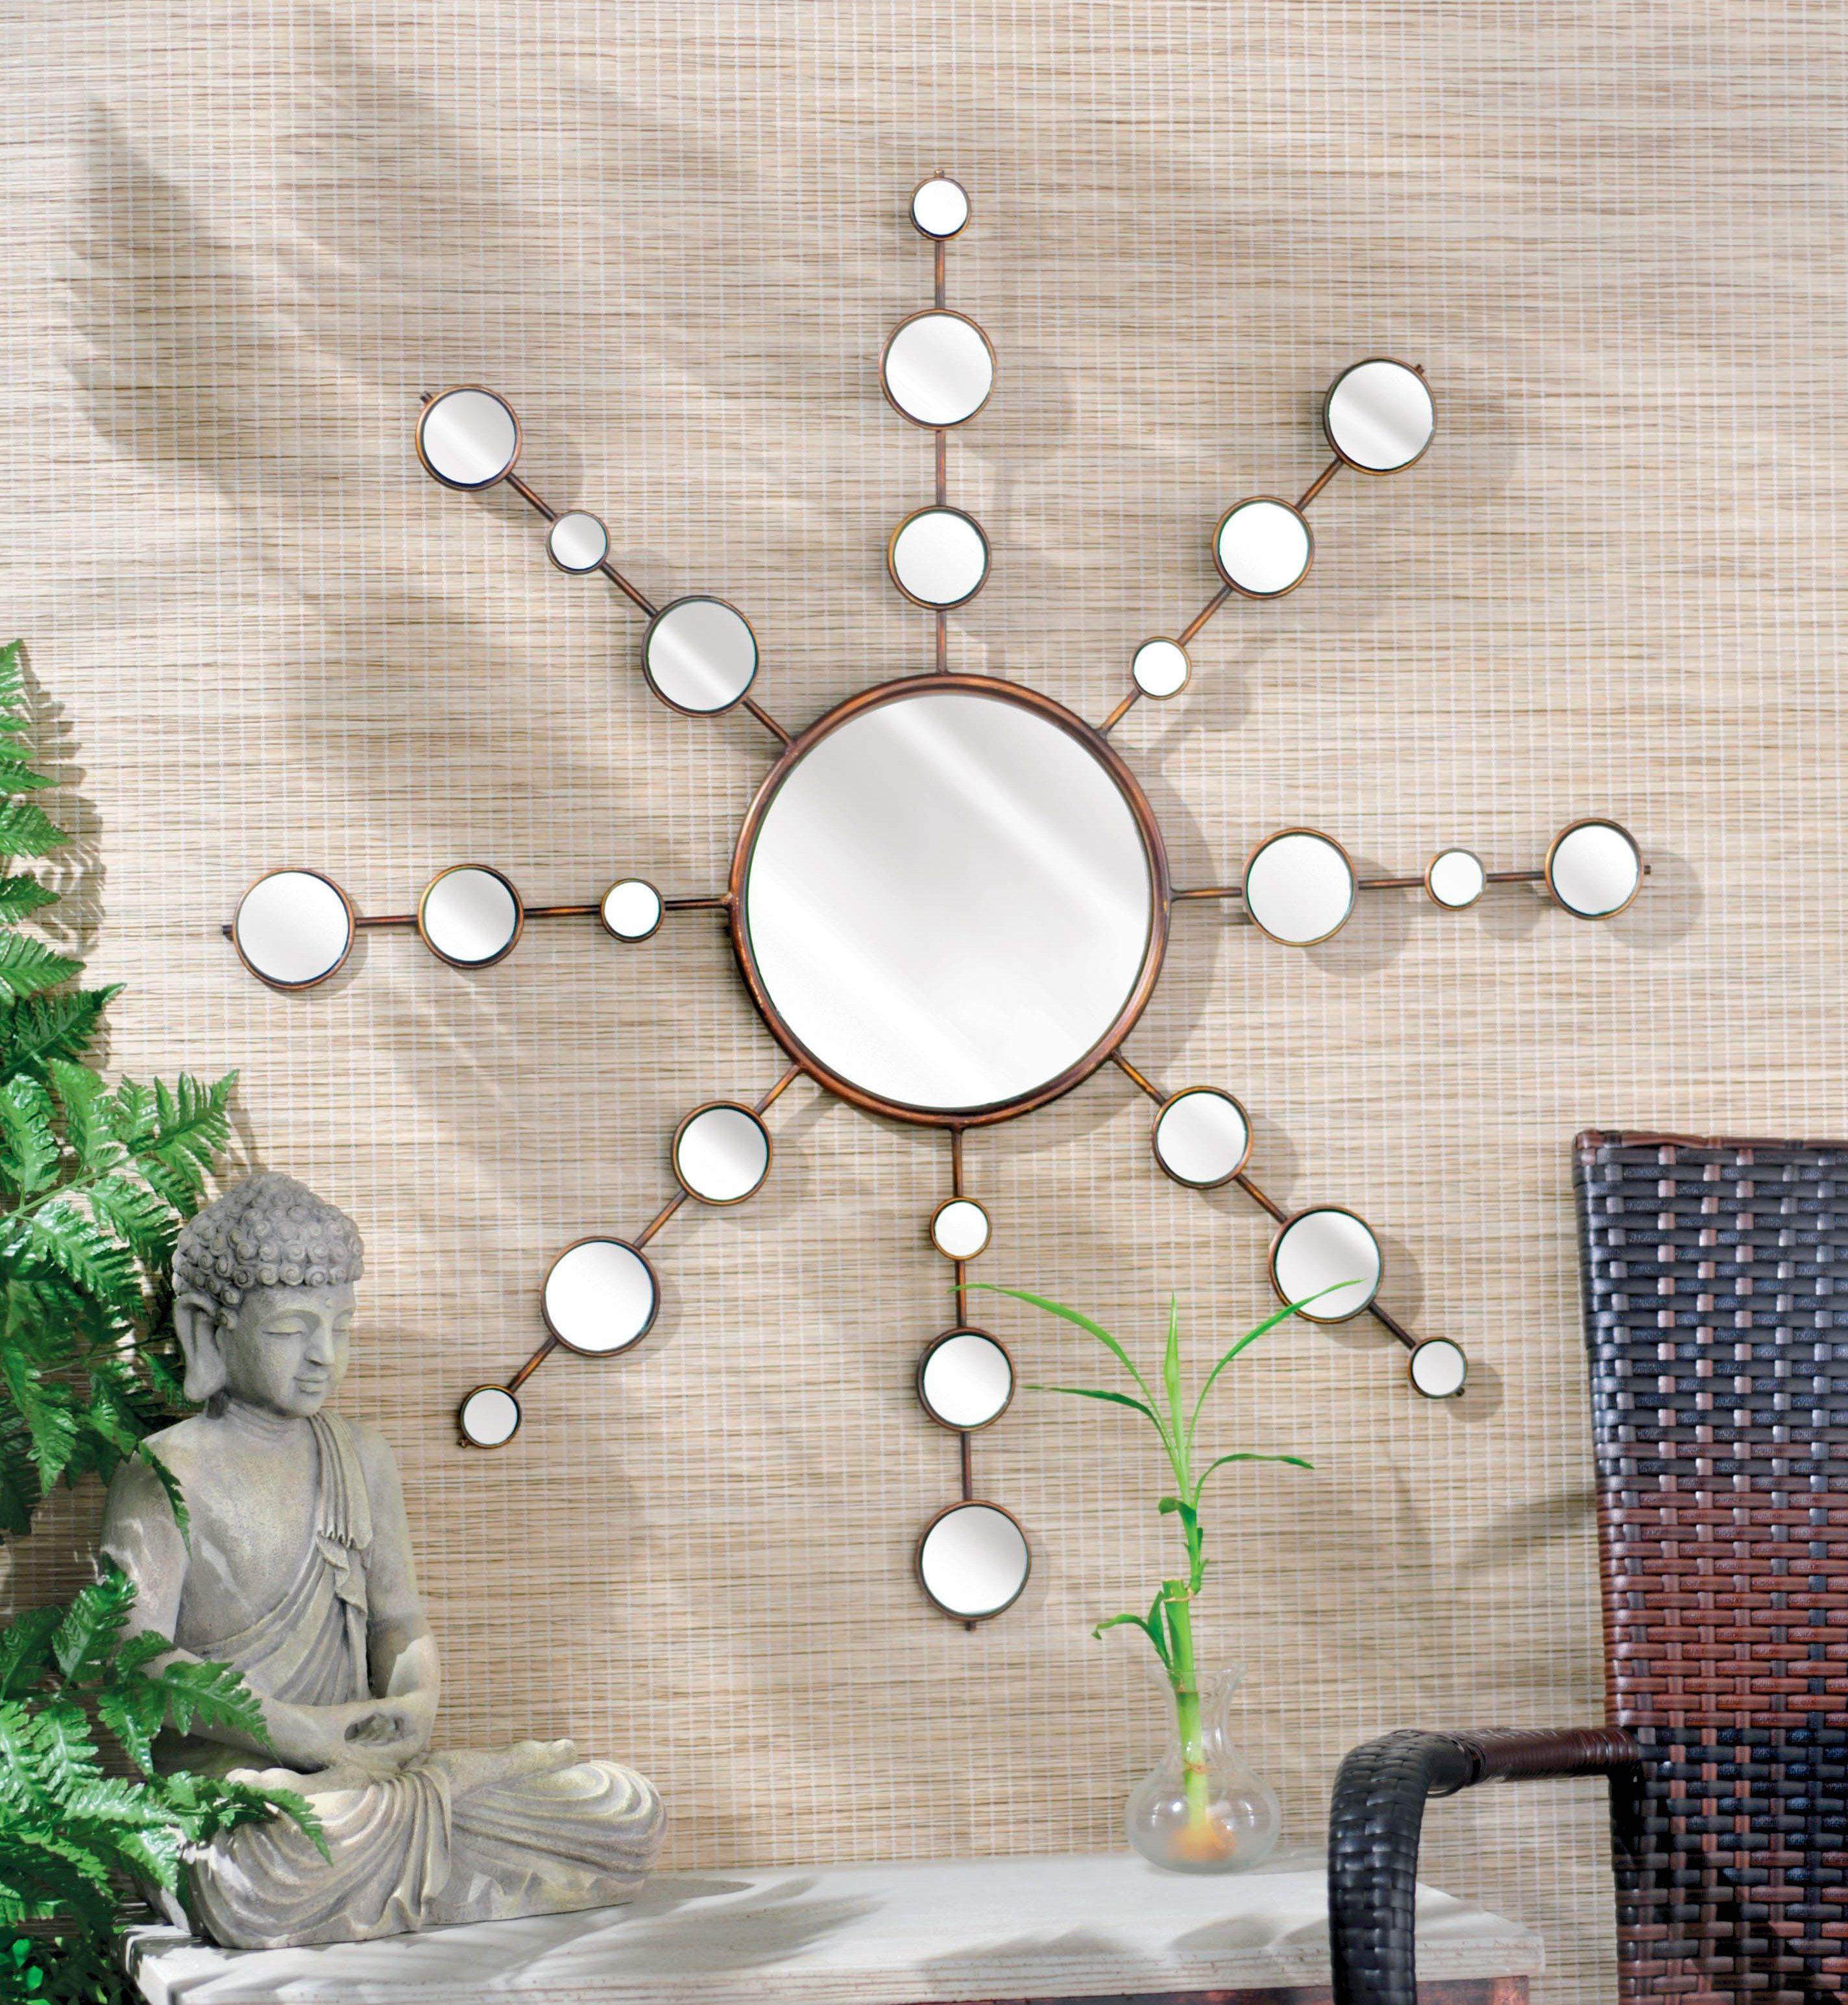 """Thin rustic bronze finished metal frame with 9"""" round mirror in center and assortment of 2.5"""", 2.25"""", 2"""" mirror accents by Grasslands Road #HomeDecor #PatioDecor #Mirror #Retreat #GrasslandsRoad #GazeboDecor"""